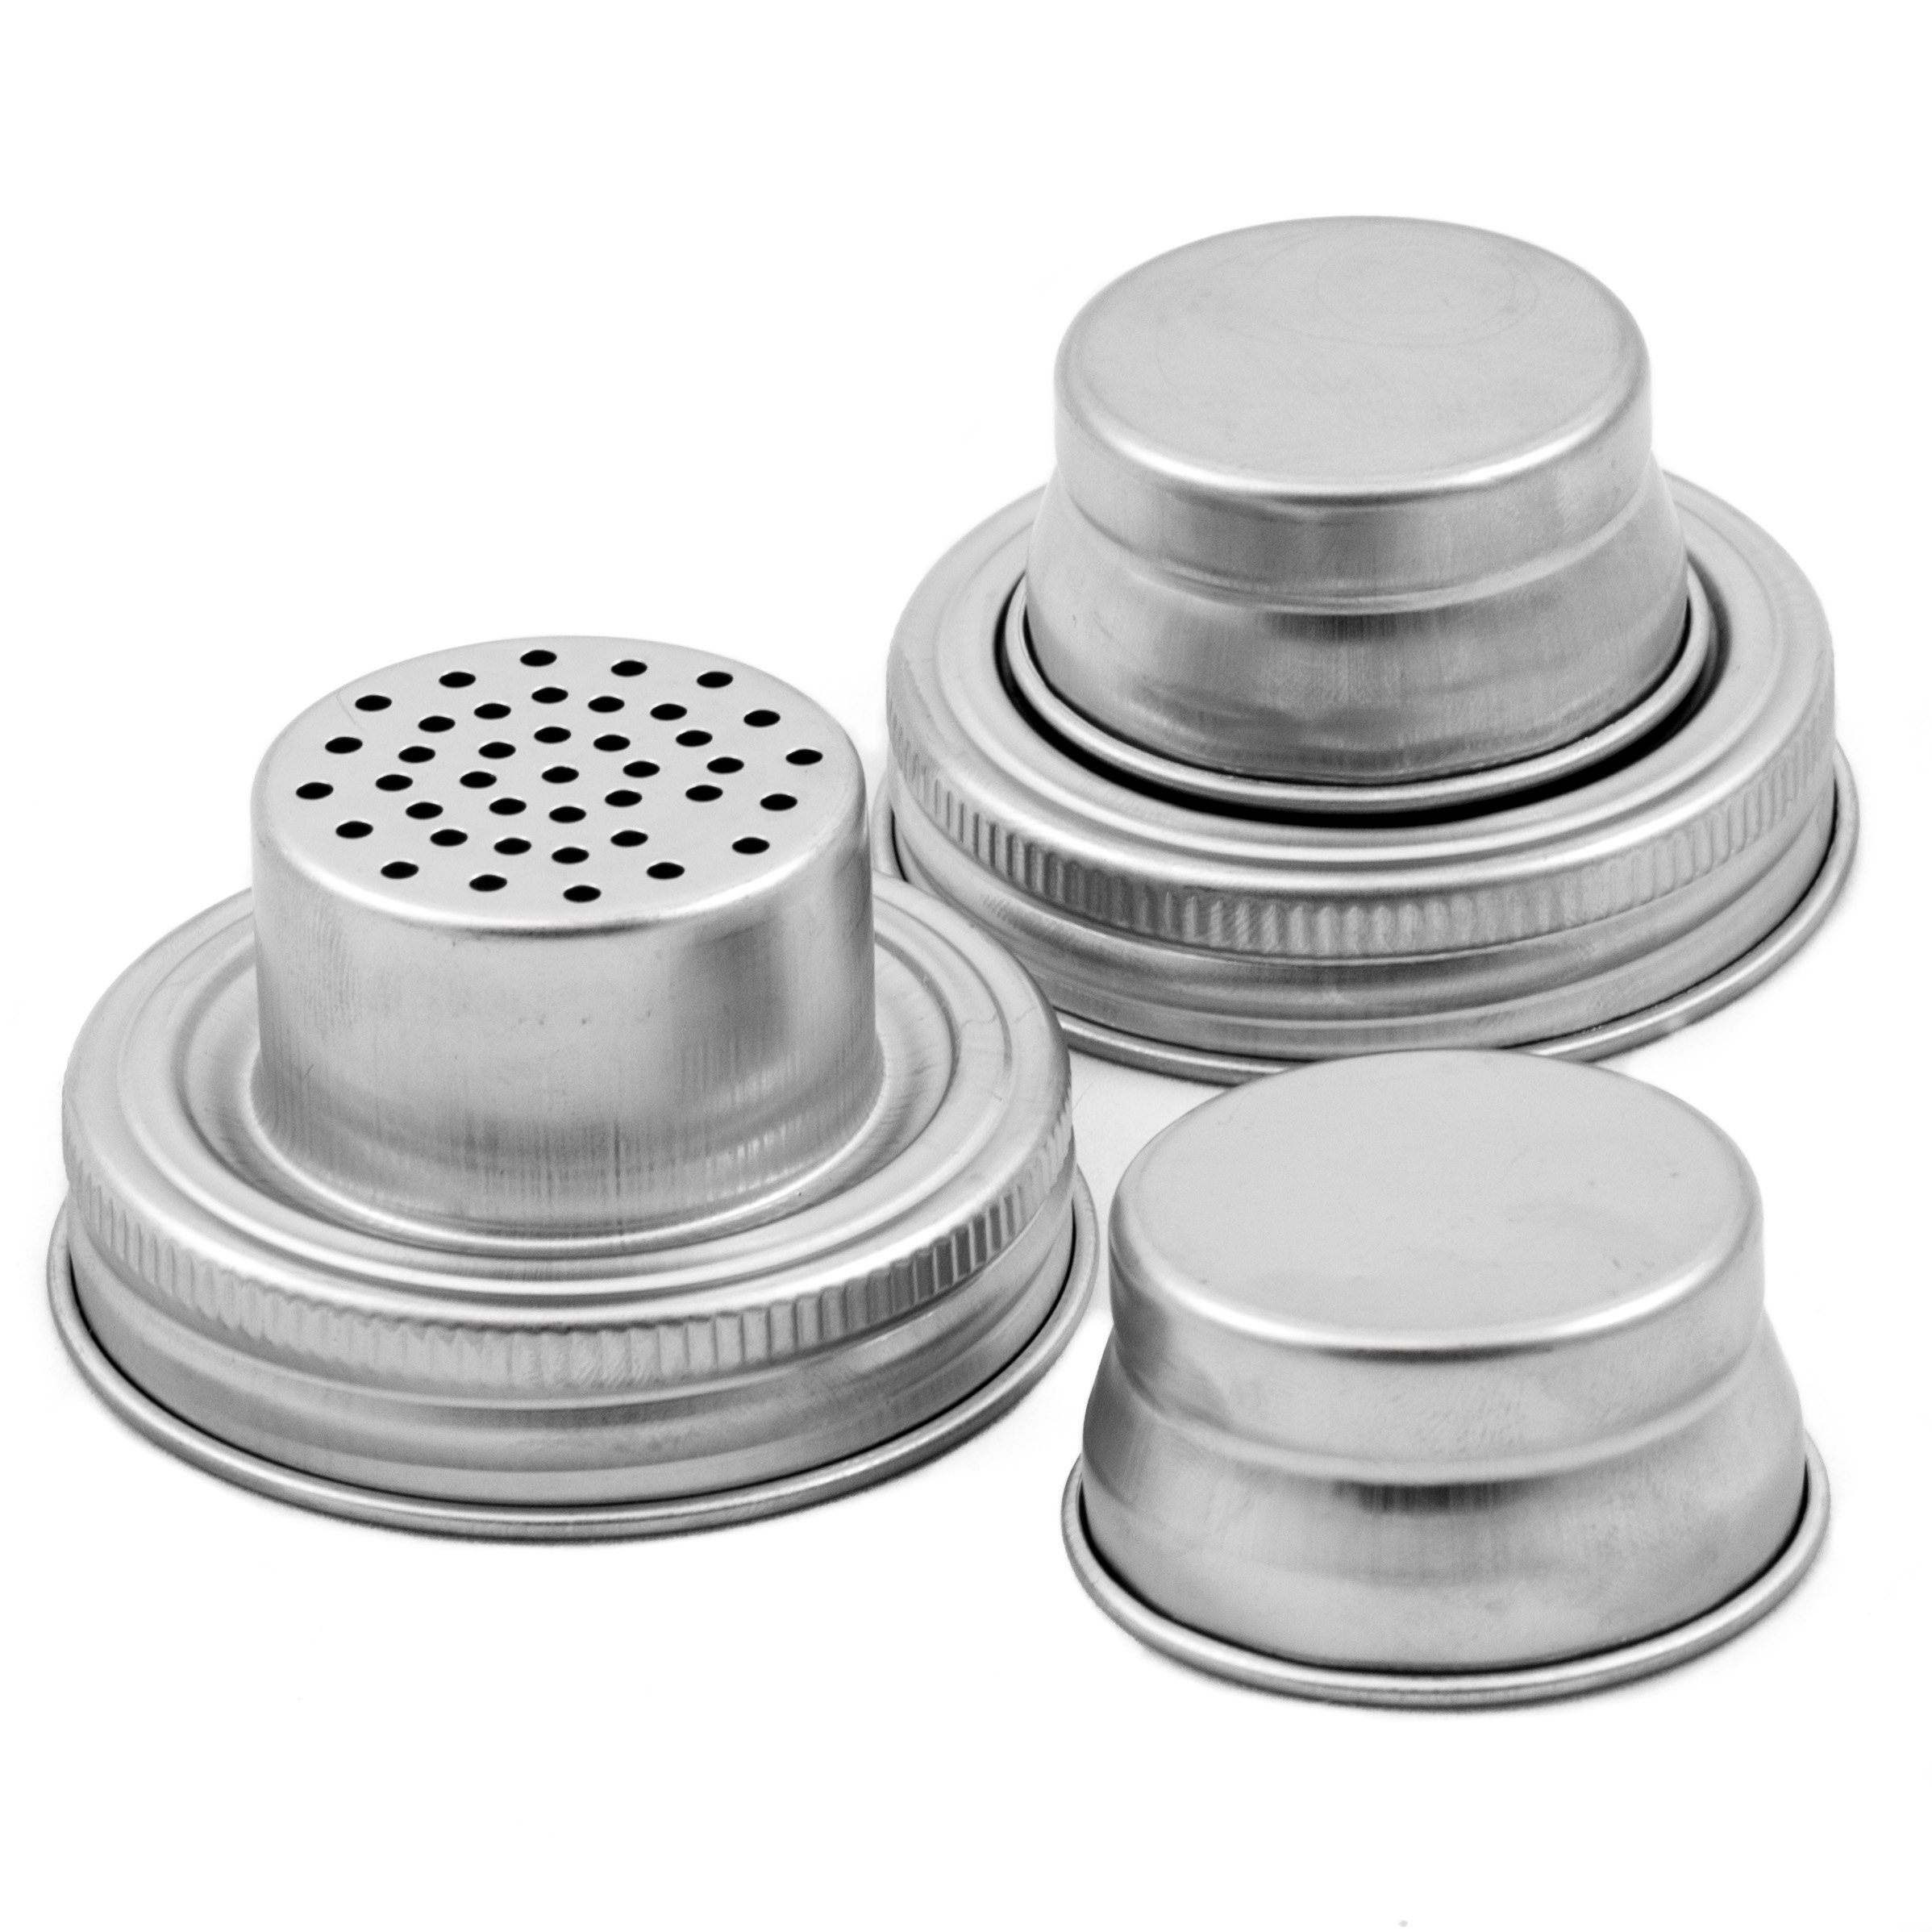 Mason Jar Shaker Lids - 2 Pack - Awesome to Shake Cocktails or Your Best Dry Rub - Mix Spices, Dredge Flour, Sugar & More - Fits Any Regular Mouth Canning Jar - Durable, Rust Proof Stainless Steel by Organic Family Products